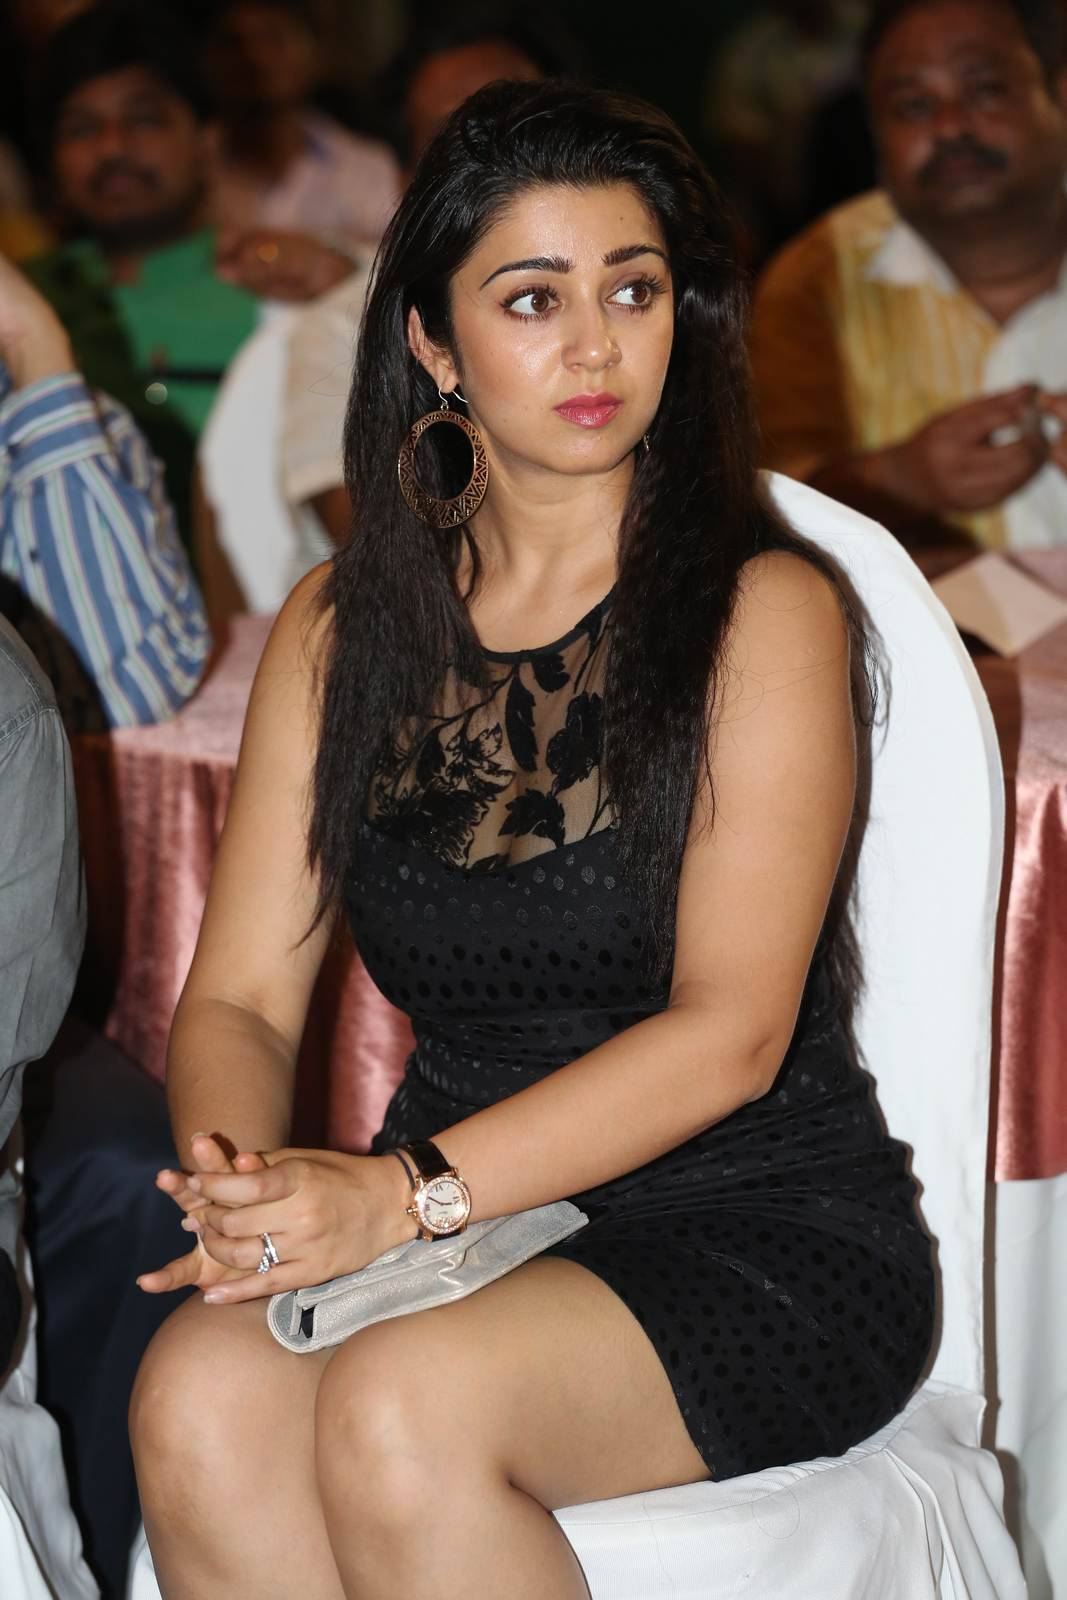 Charmi Stills in Black Skirt, Charmee Kaur Pics Clicked in Black Dress at Event